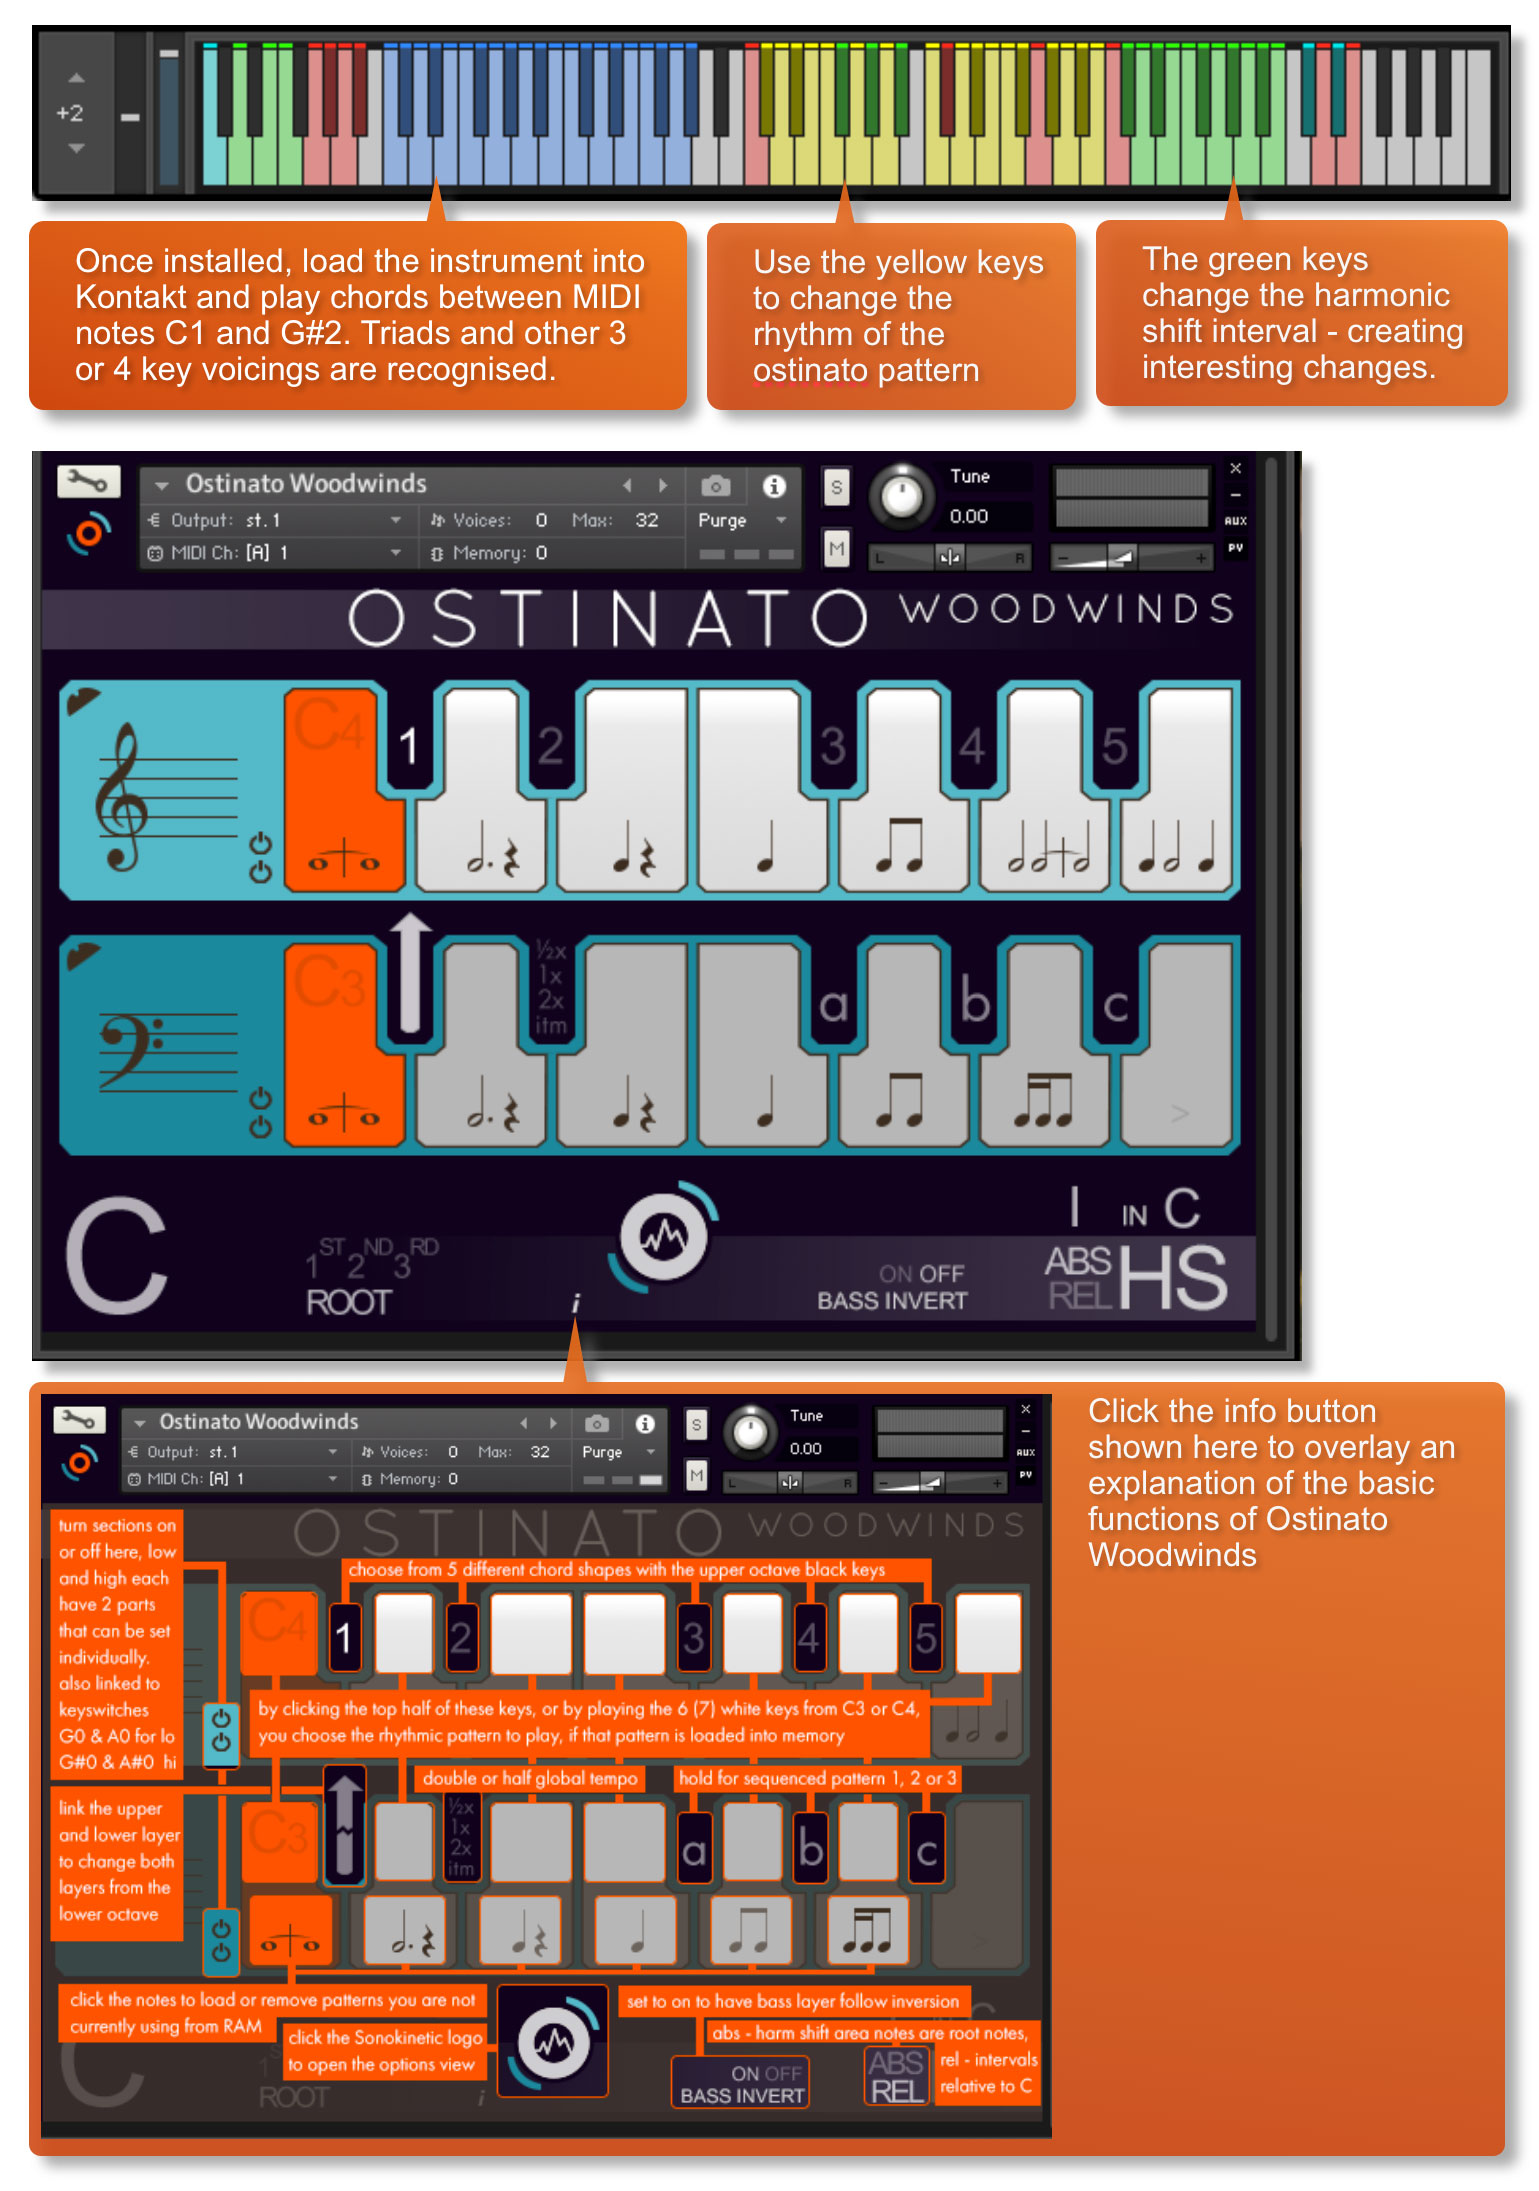 Ostinato Woodwinds Quick Start